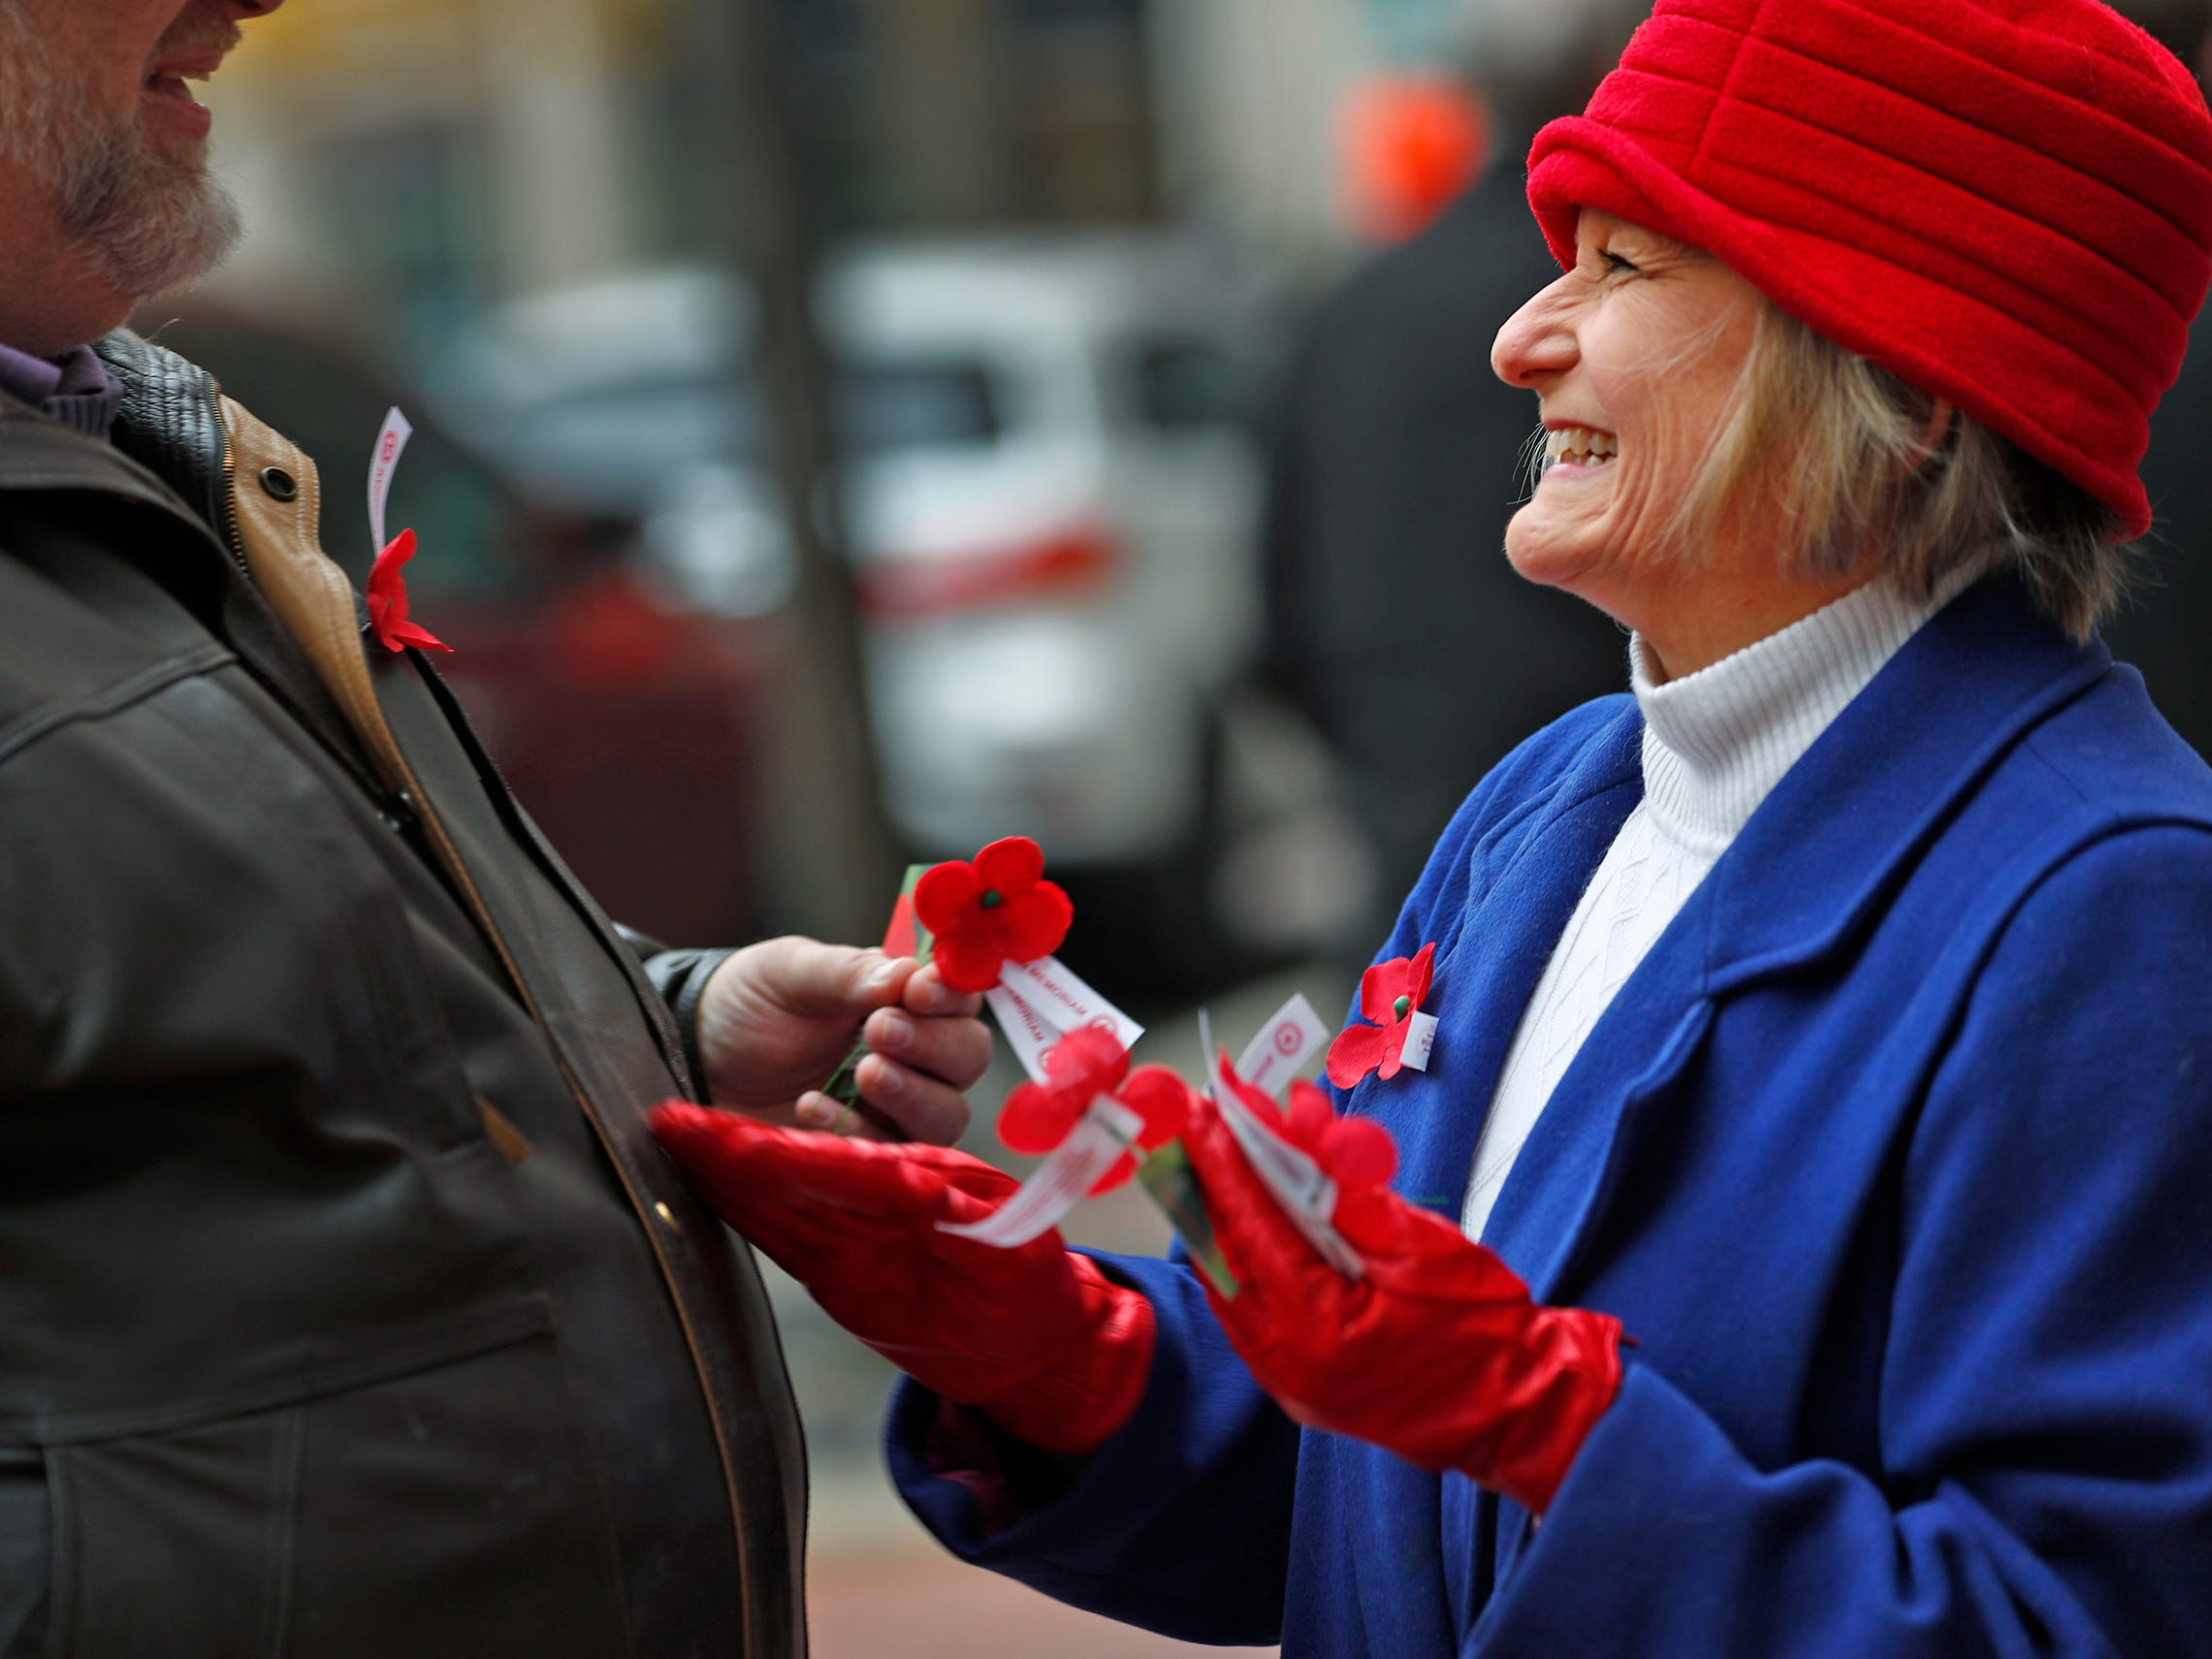 Marie Beason, Executive Director of the Indiana War Memorials Foundation, right, smiles with her husband Michael Beason, left, as they give away free Remembrance Poppies from the Indiana War Memorials Foundation (IWMF) and Emmis Communications, on Monument Circle, Friday, Nov. 9, 2018.  The flower give-away is in celebration of Veterans Day and the 100th anniversary of the end of World War I.